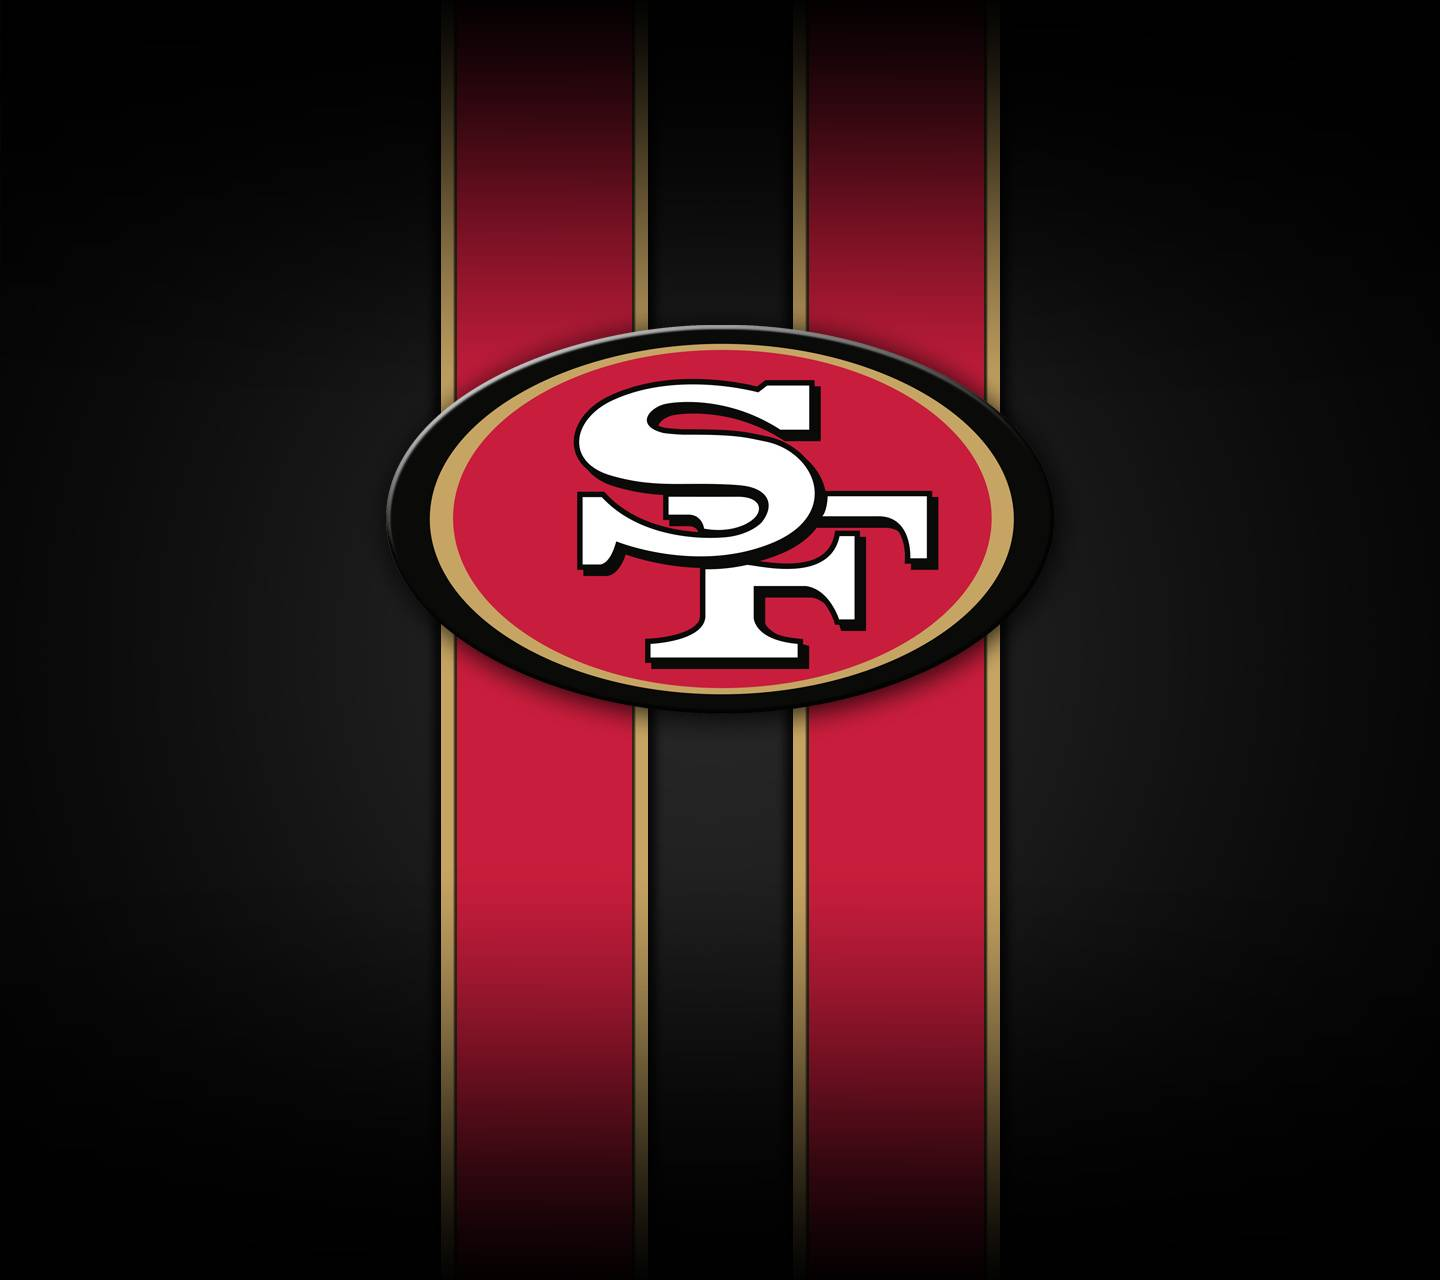 49ers wallpaper for android animaxwallpaper free 49ers wallpapers for your mobile phone most voltagebd Choice Image